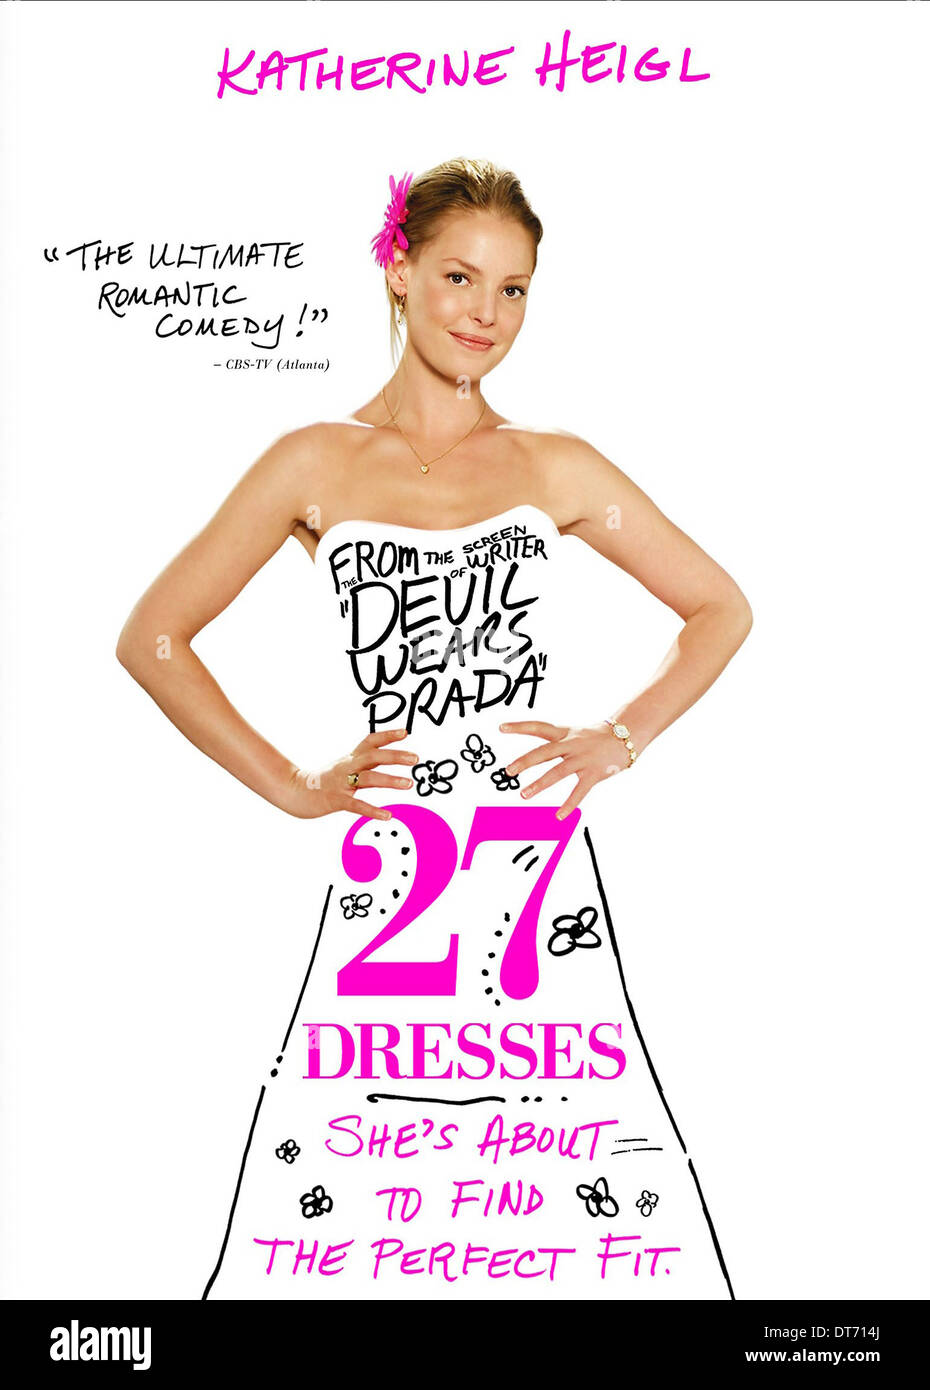 Images 27 dresses movie